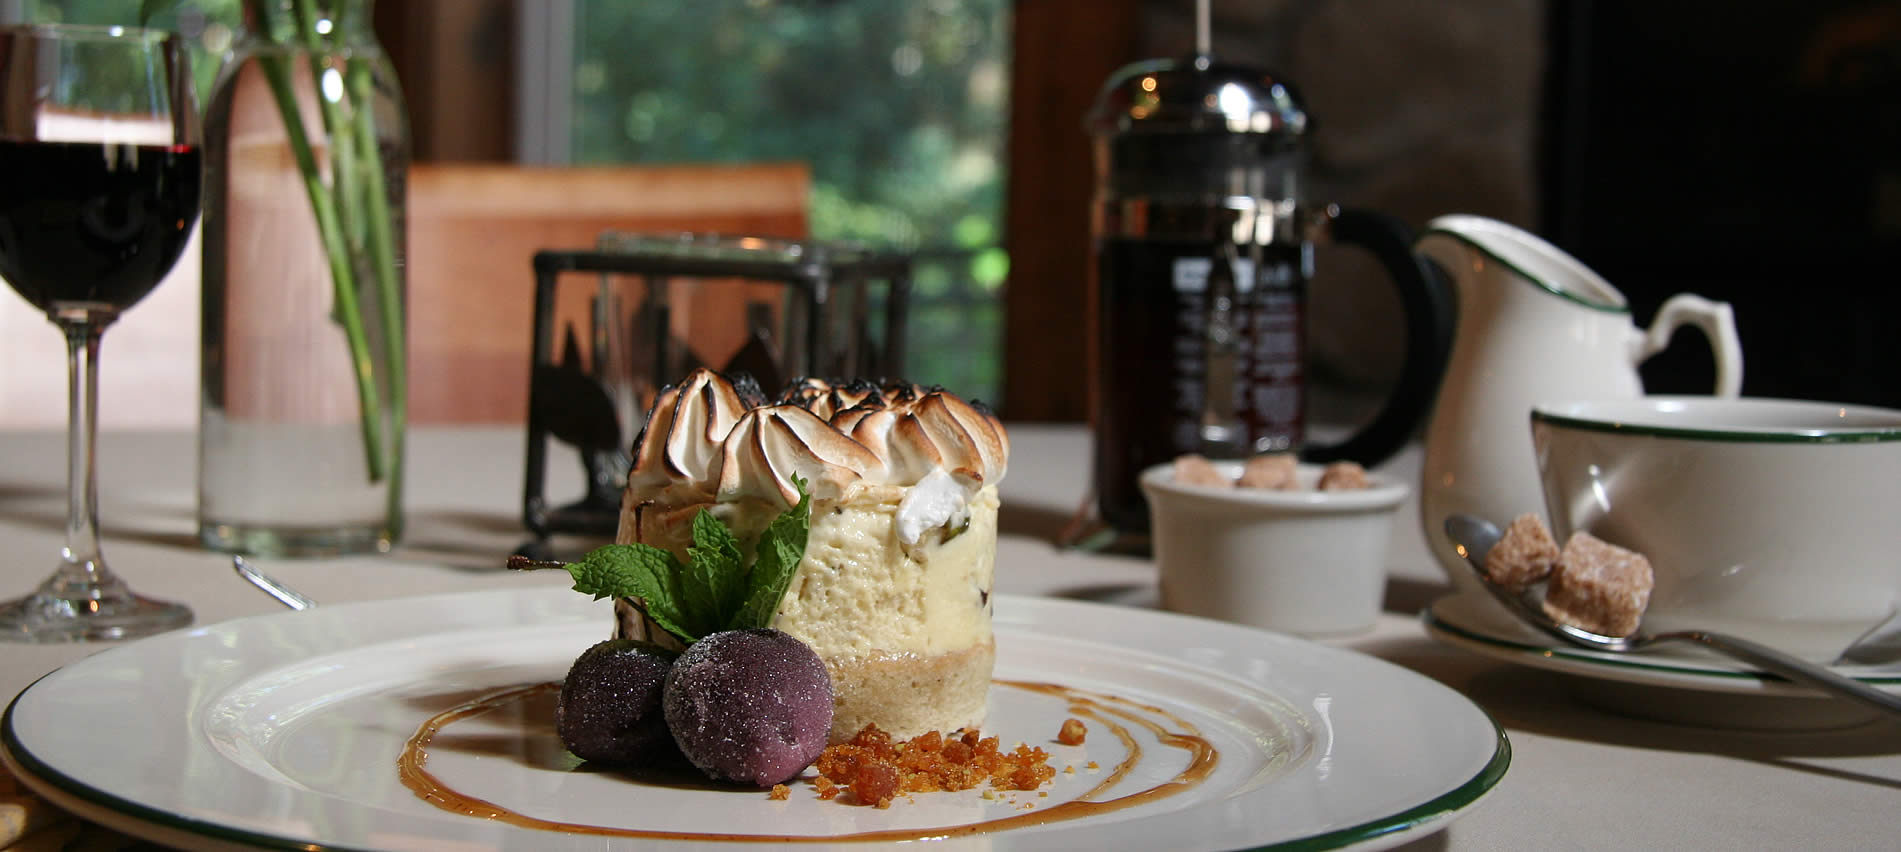 port angeles restaurants, wineries and dessert houses